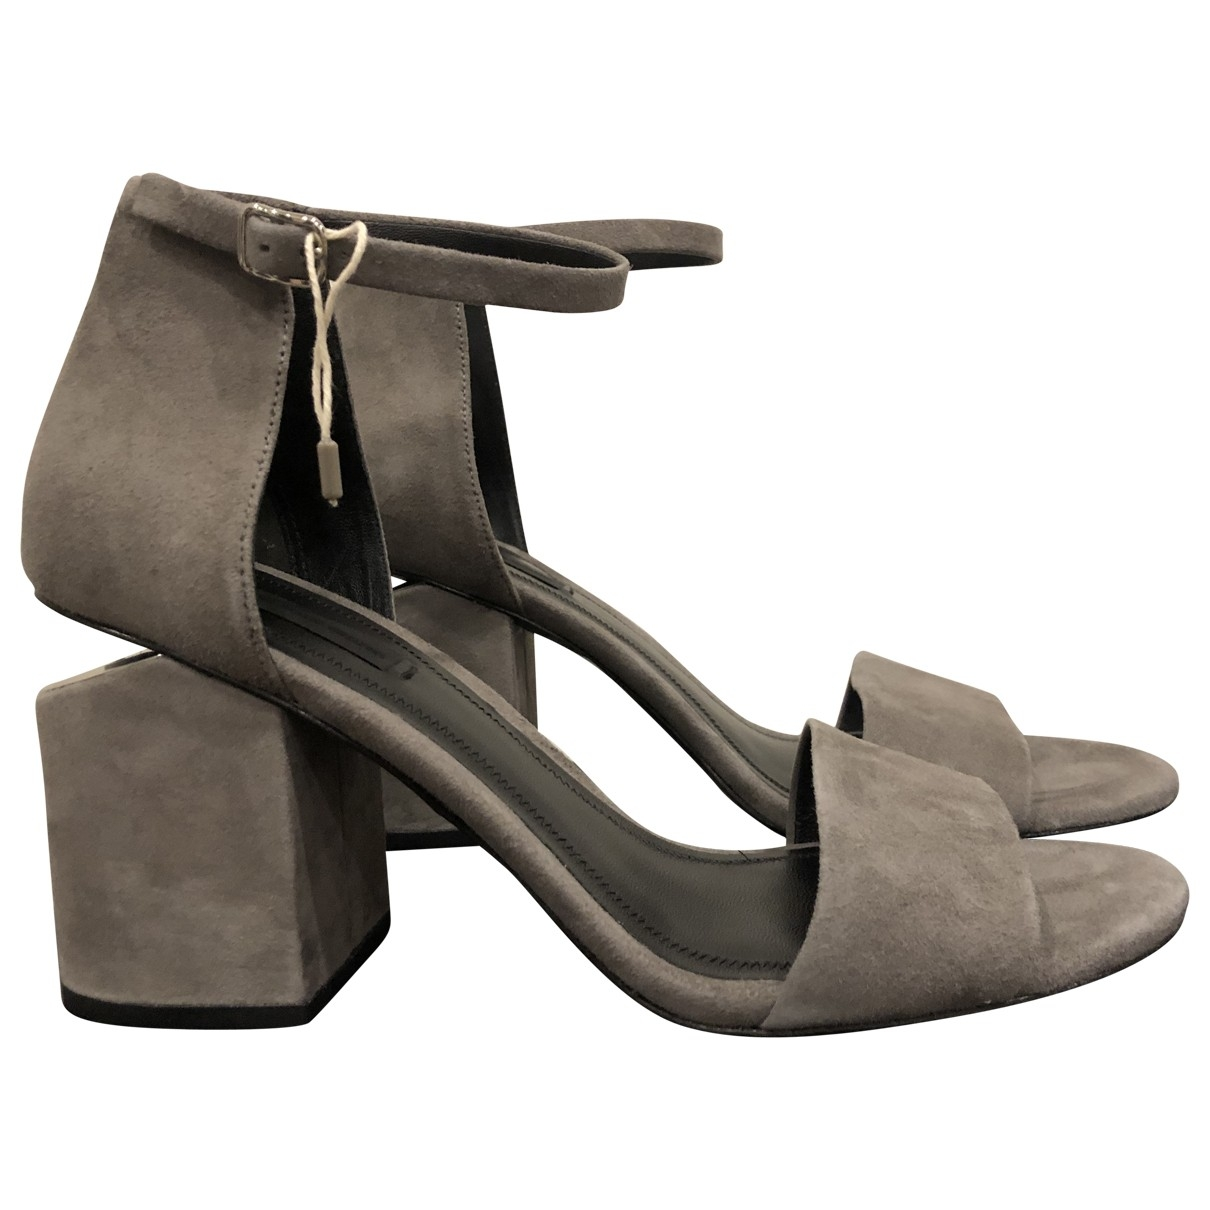 Alexander Wang \N Grey Suede Sandals for Women 39.5 EU